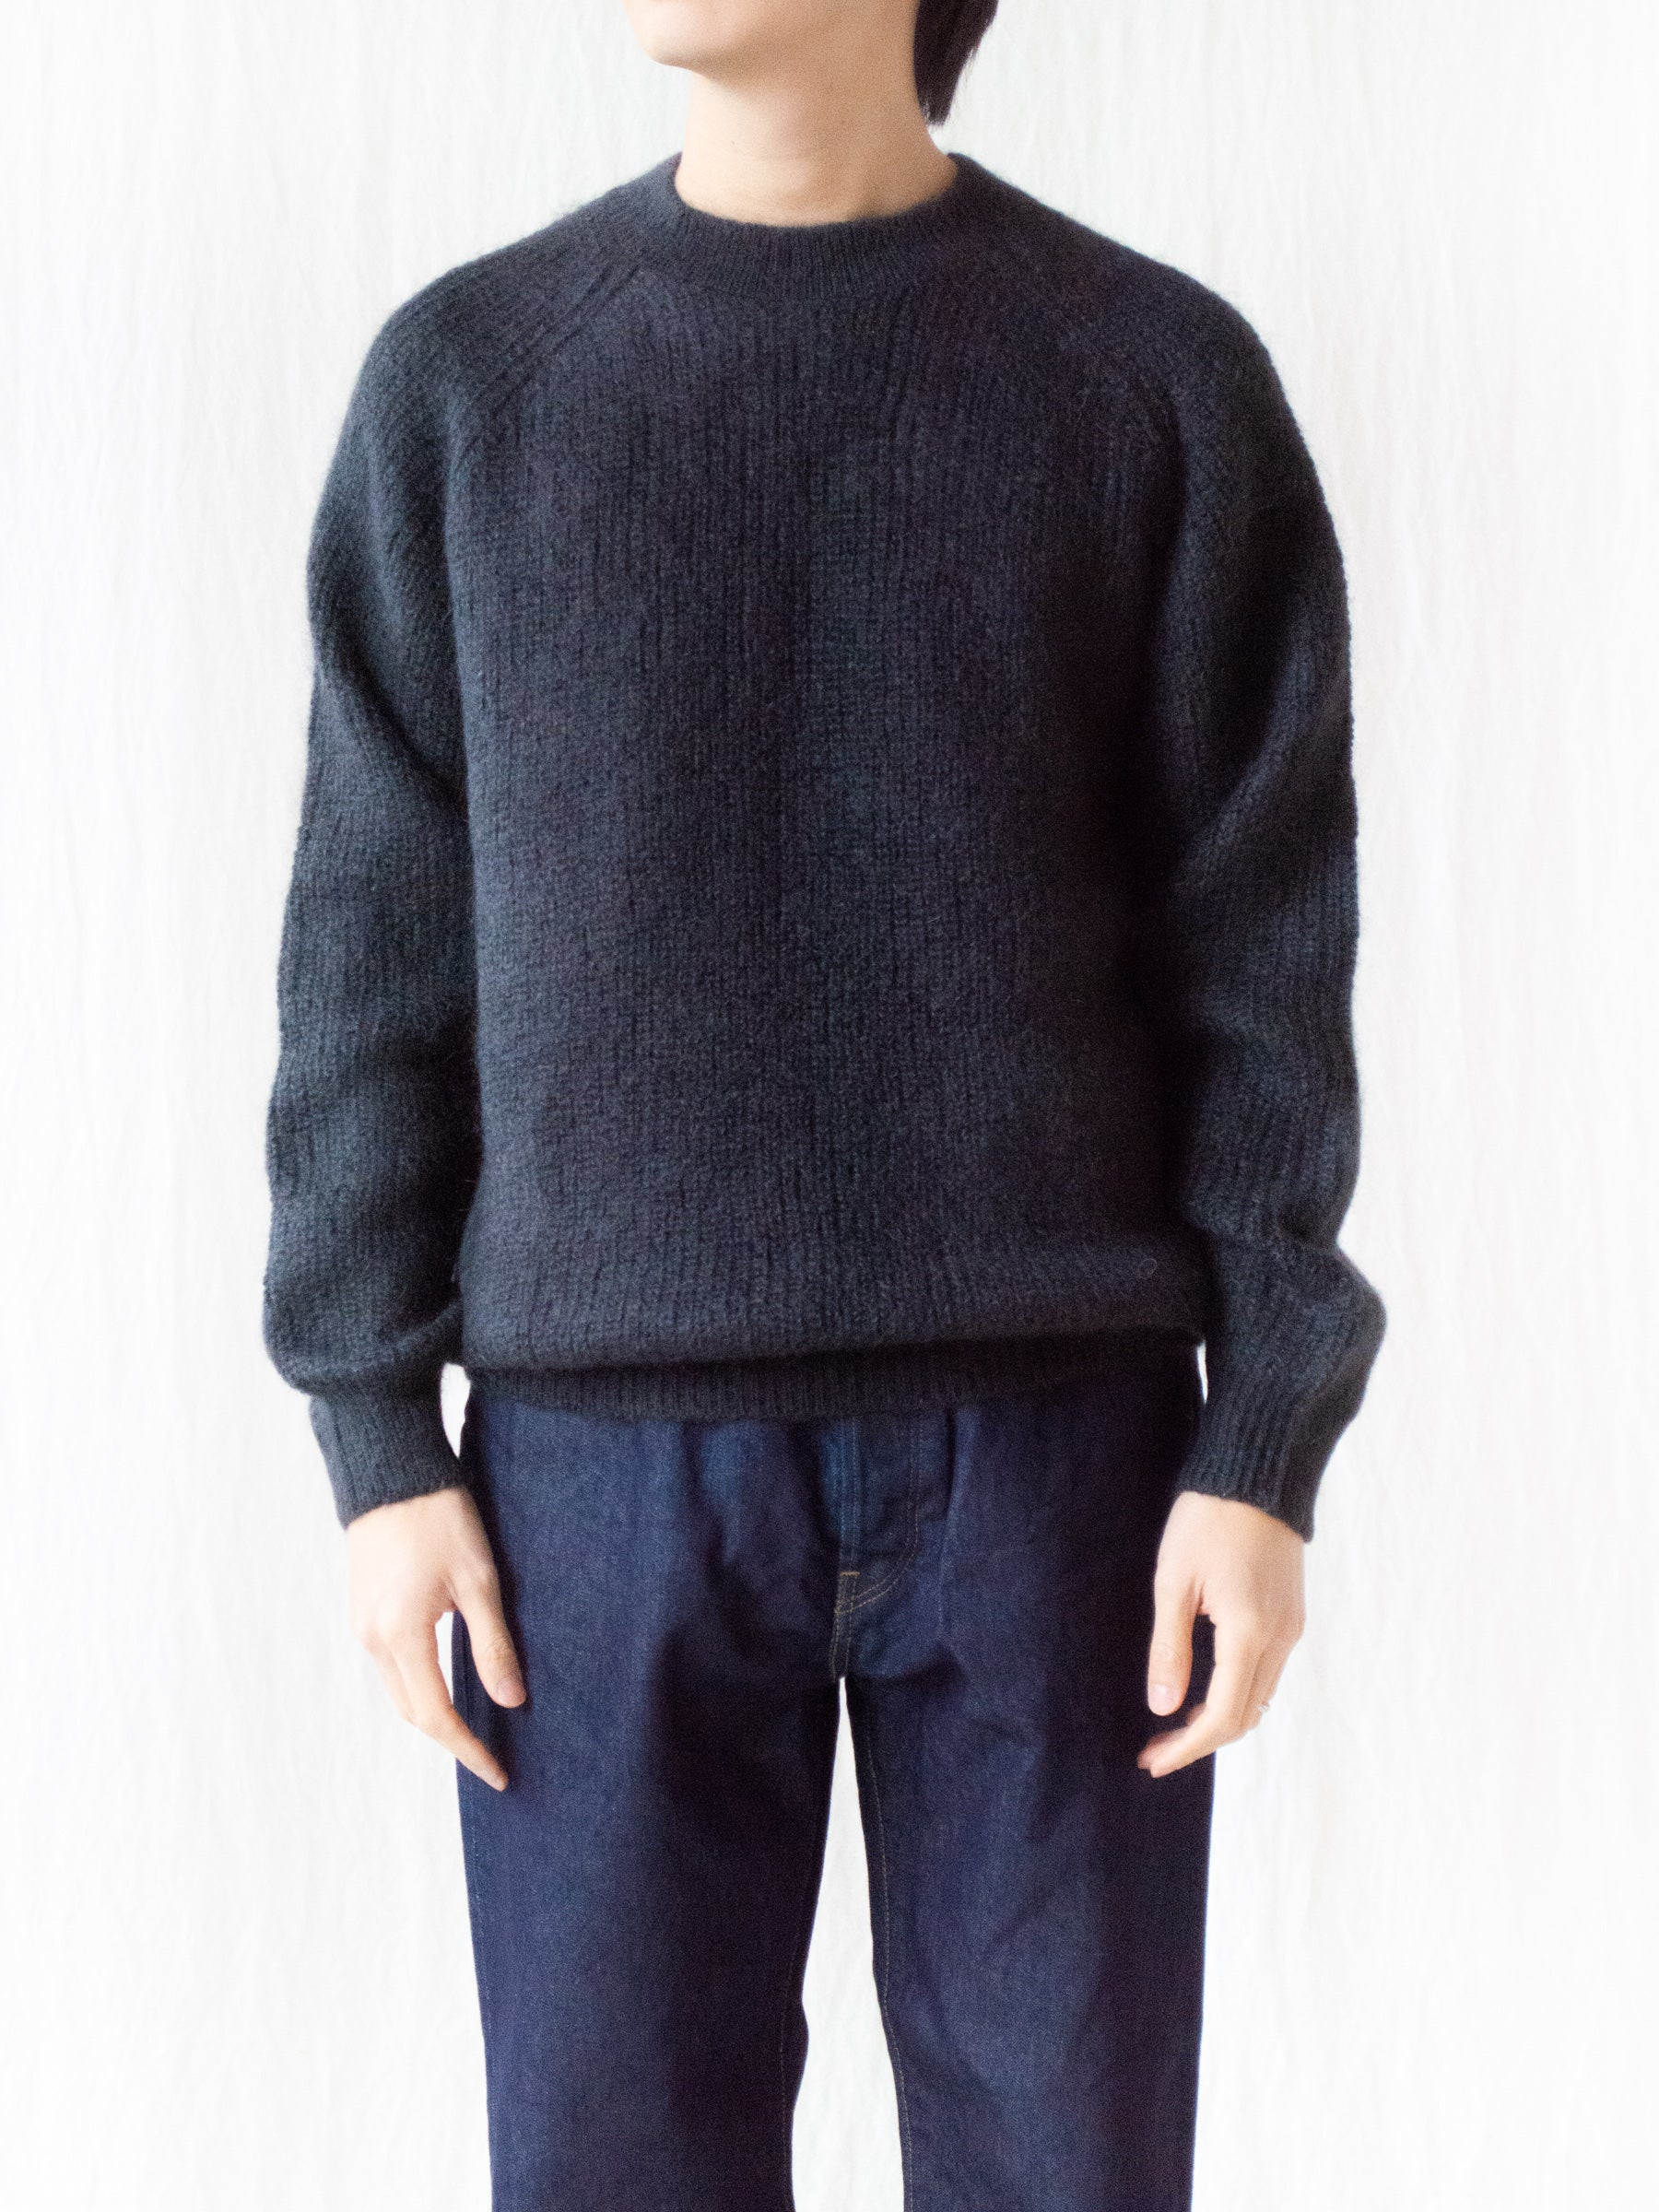 Mohair Silk Rib Stitch Sweater - Dark Gray